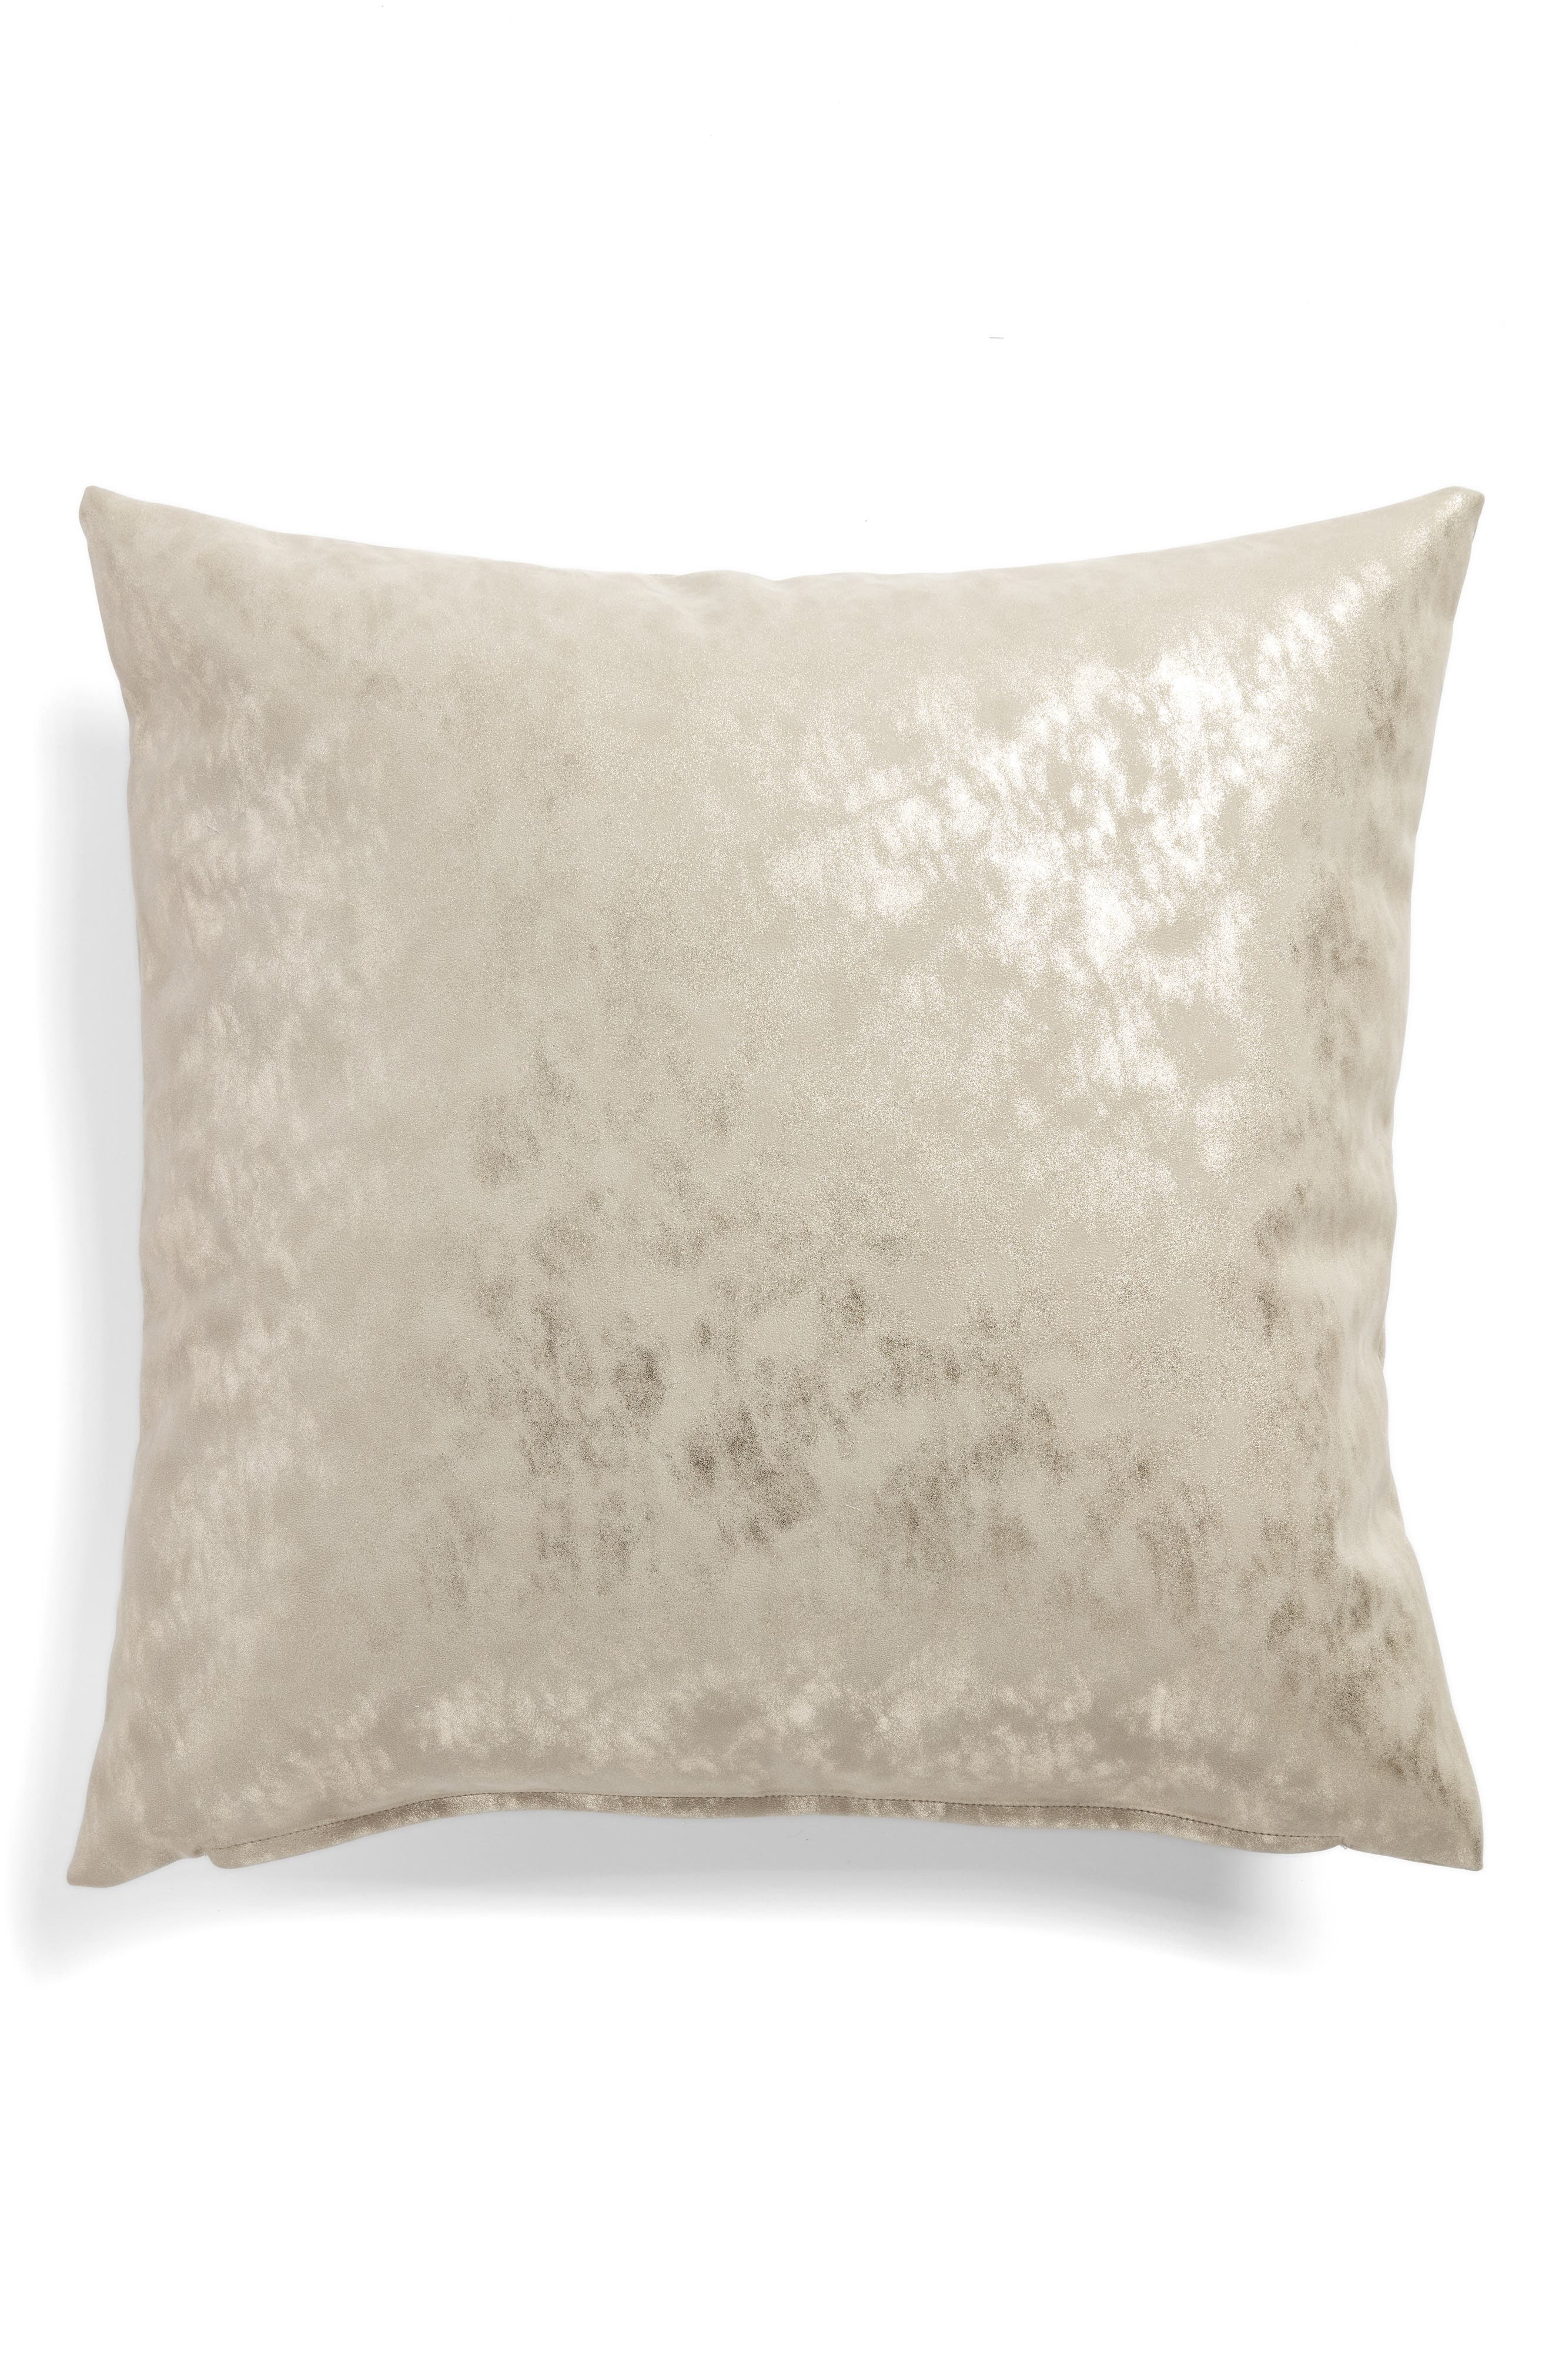 Shimmer Accent Pillow,                             Main thumbnail 1, color,                             GREY CHIME